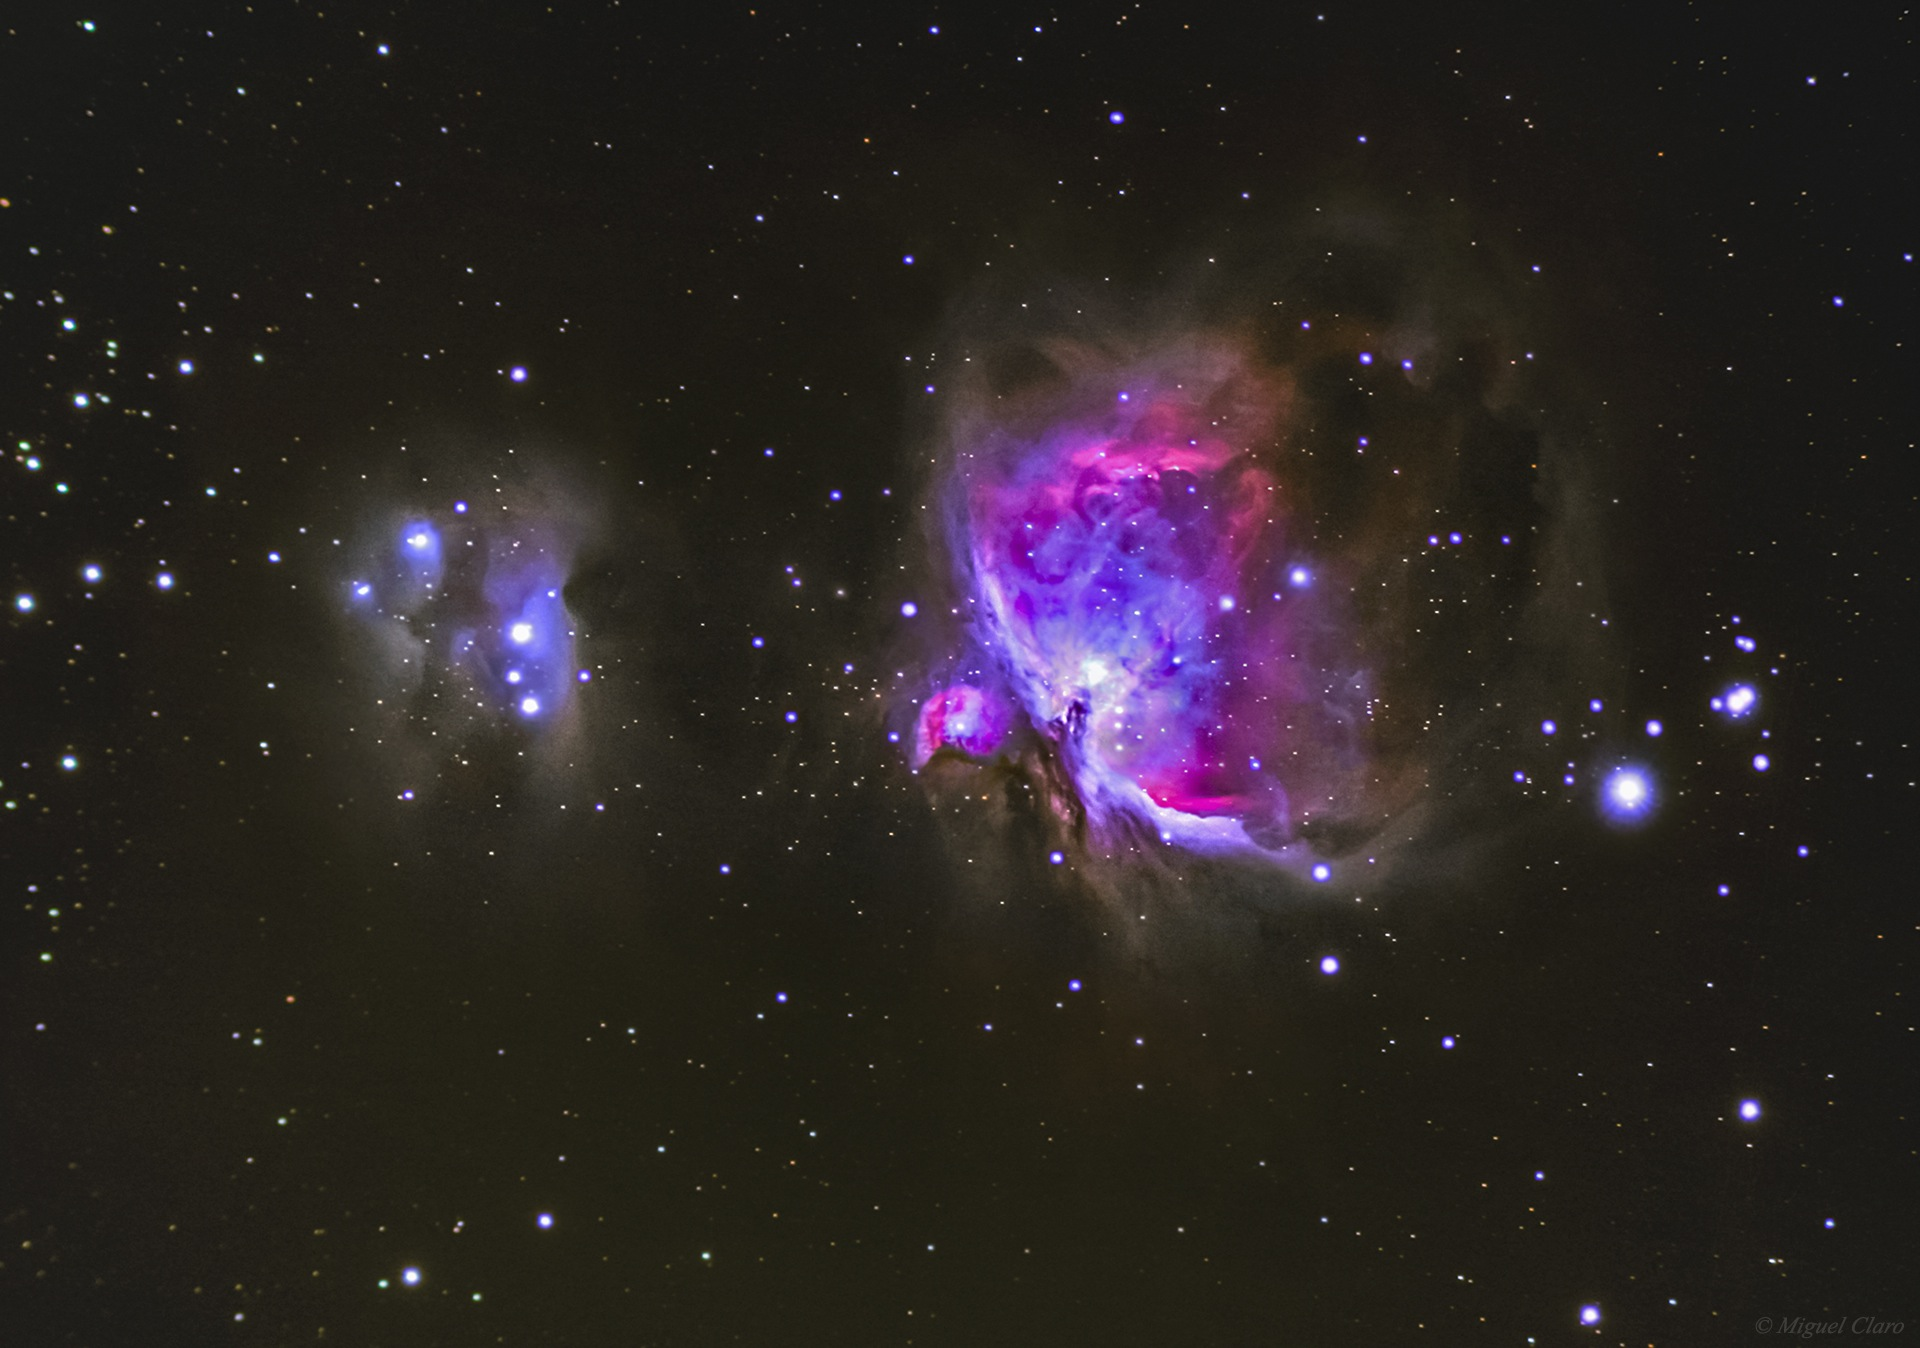 Stargazer Captures Stunning Look at Nebula Using Portable Gear